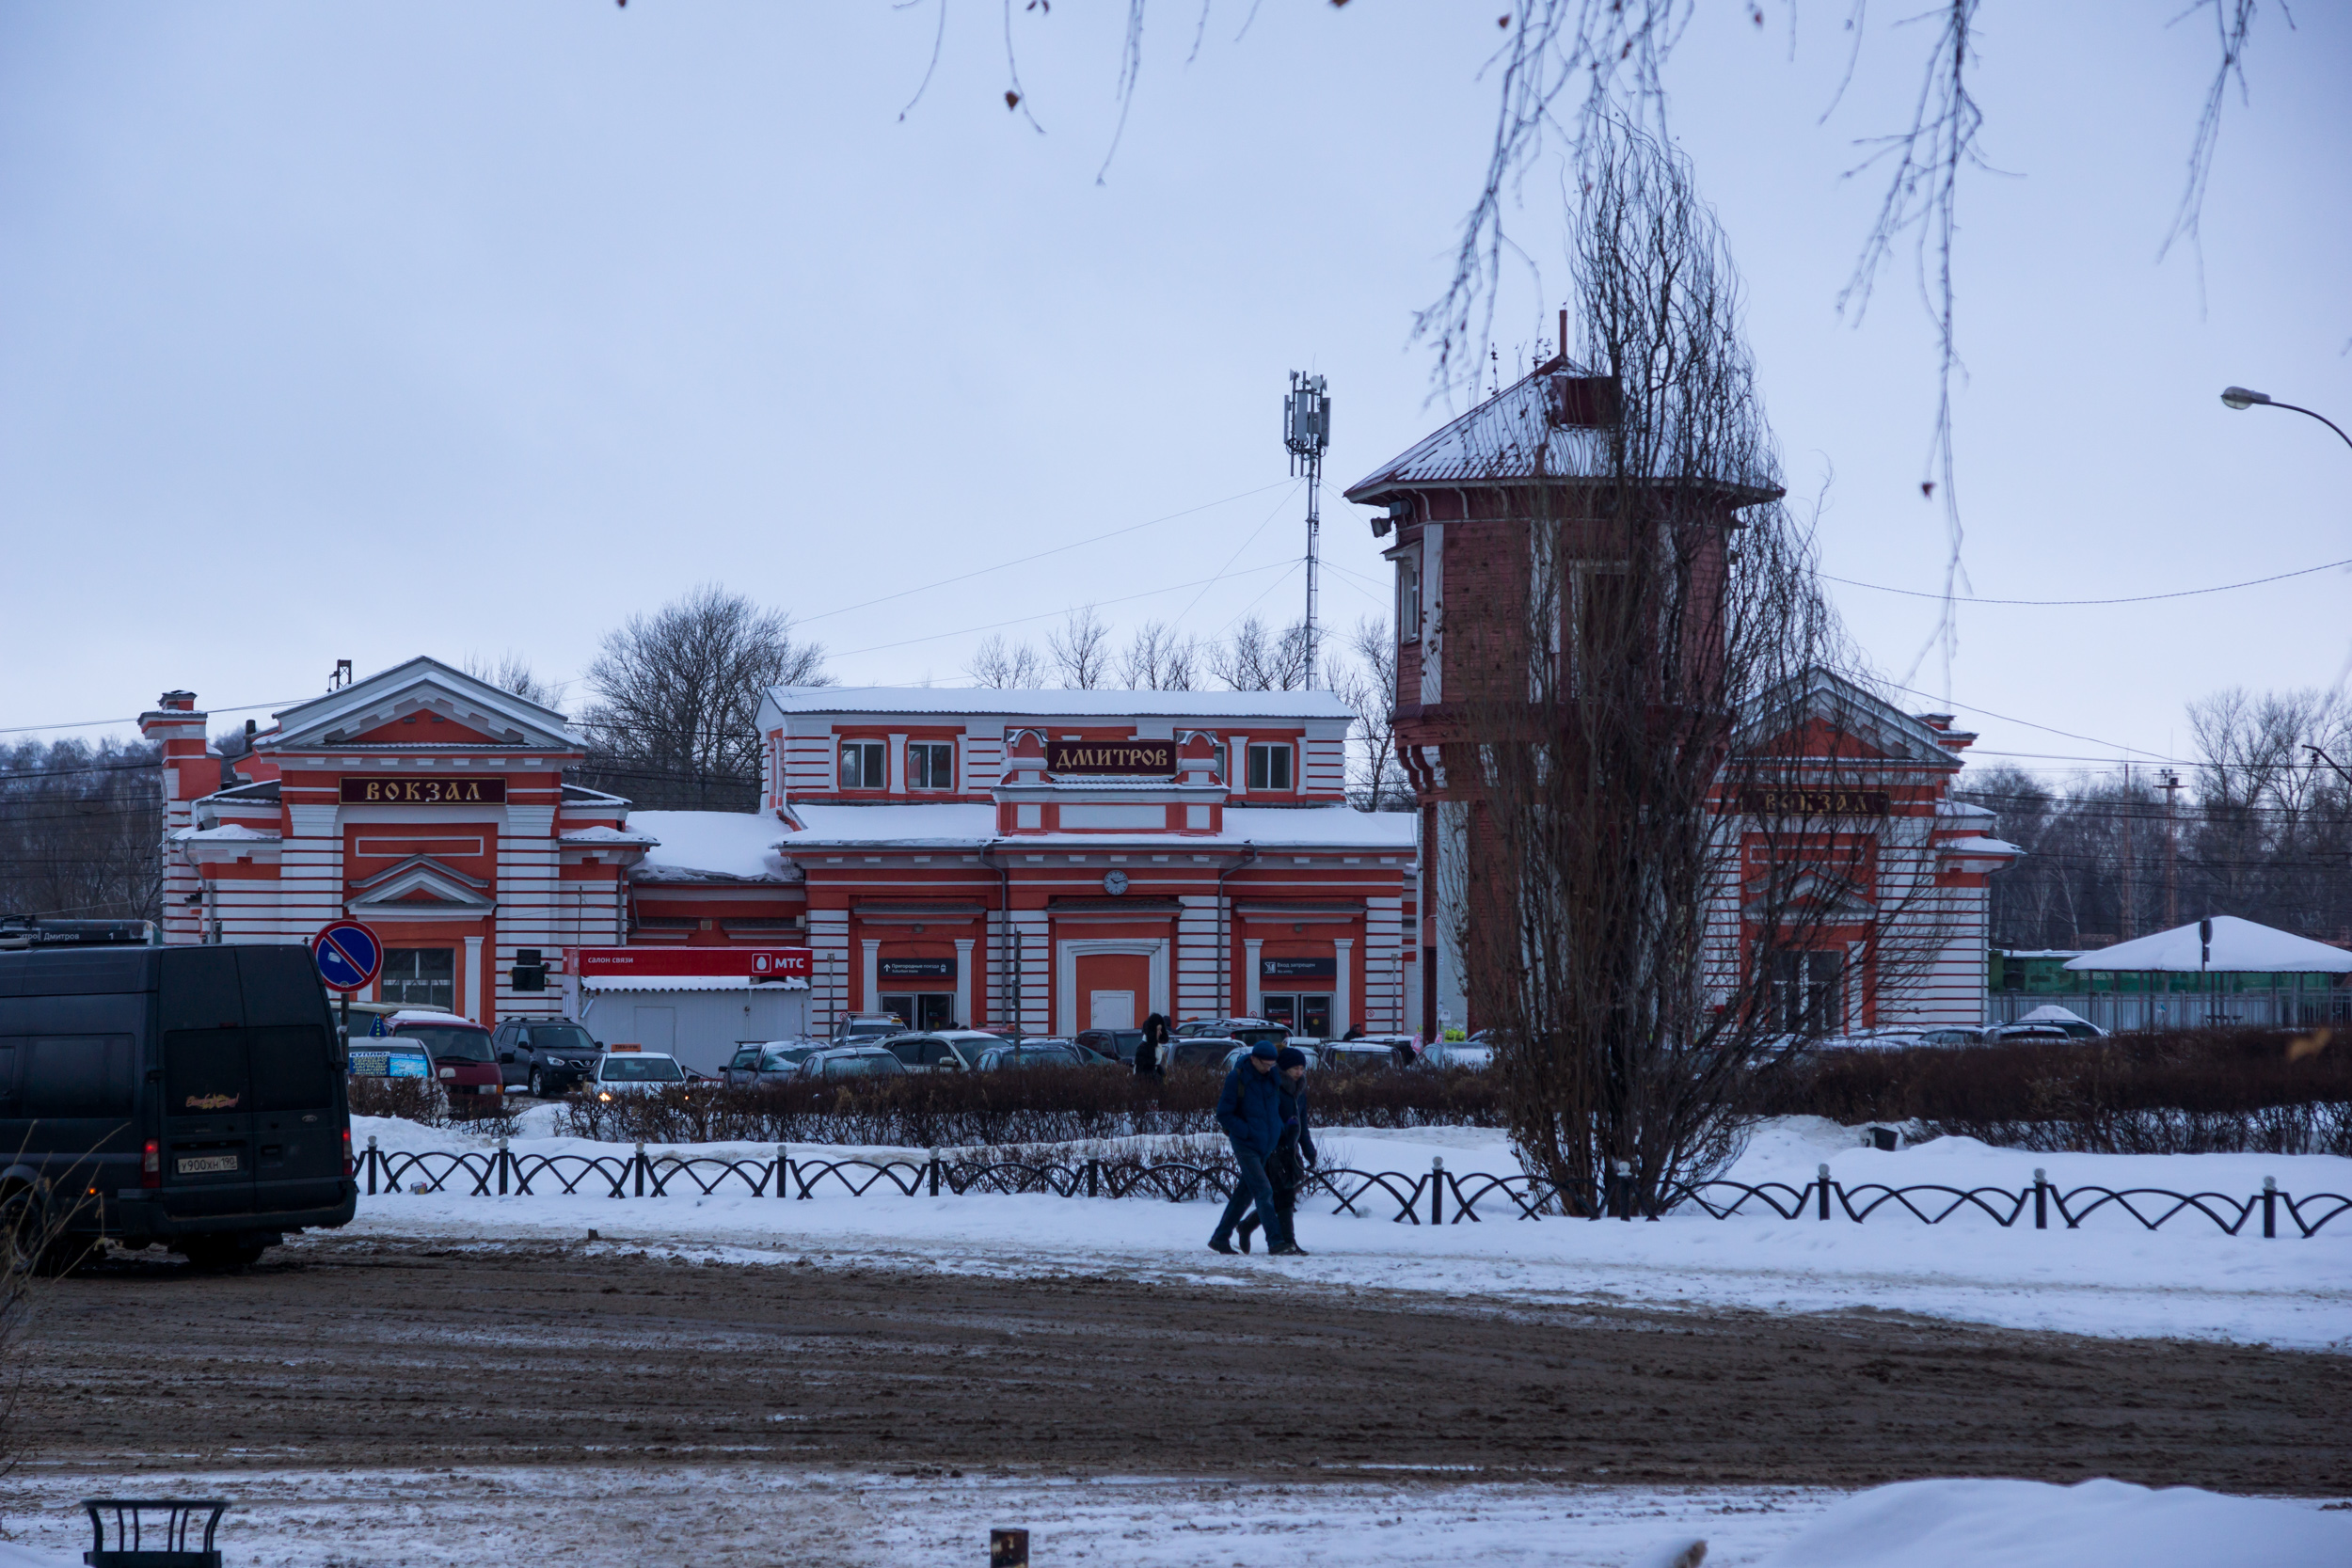 Station Dmitrov